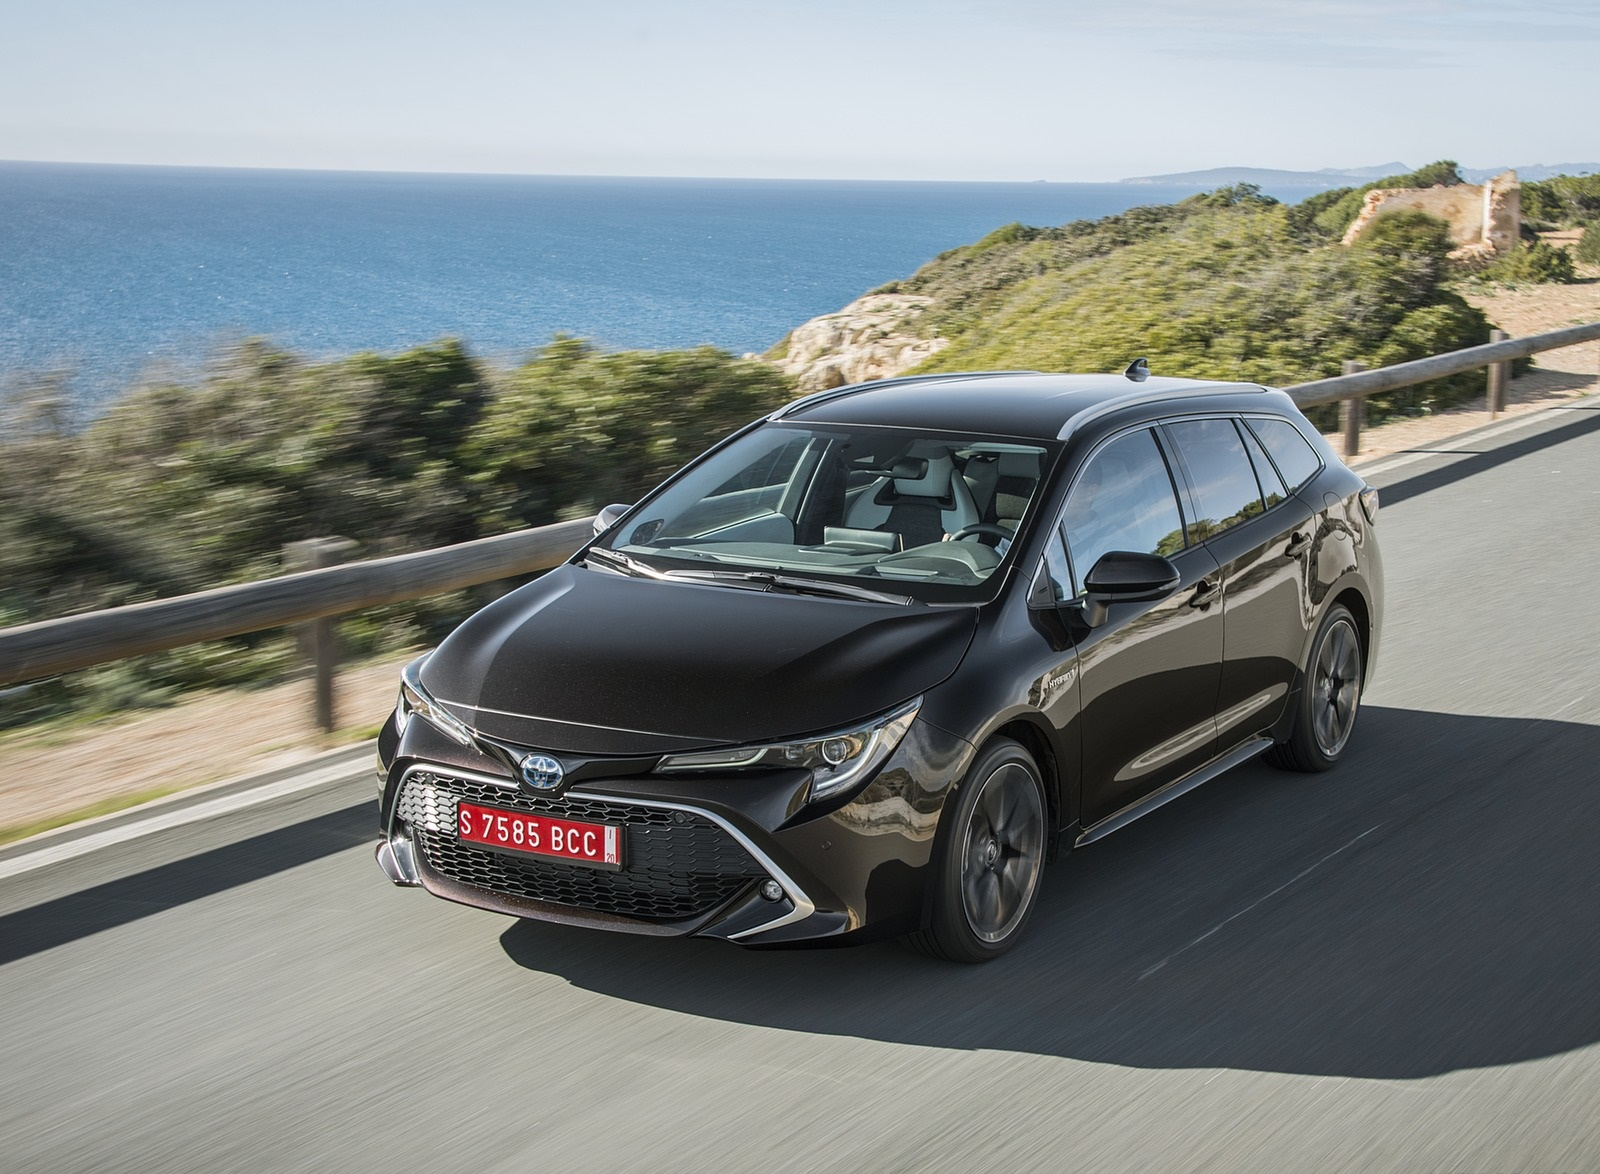 2019 Toyota Corolla Touring Sports - Toyota Corolla Touring Sports 2019 Ground Clearance , HD Wallpaper & Backgrounds